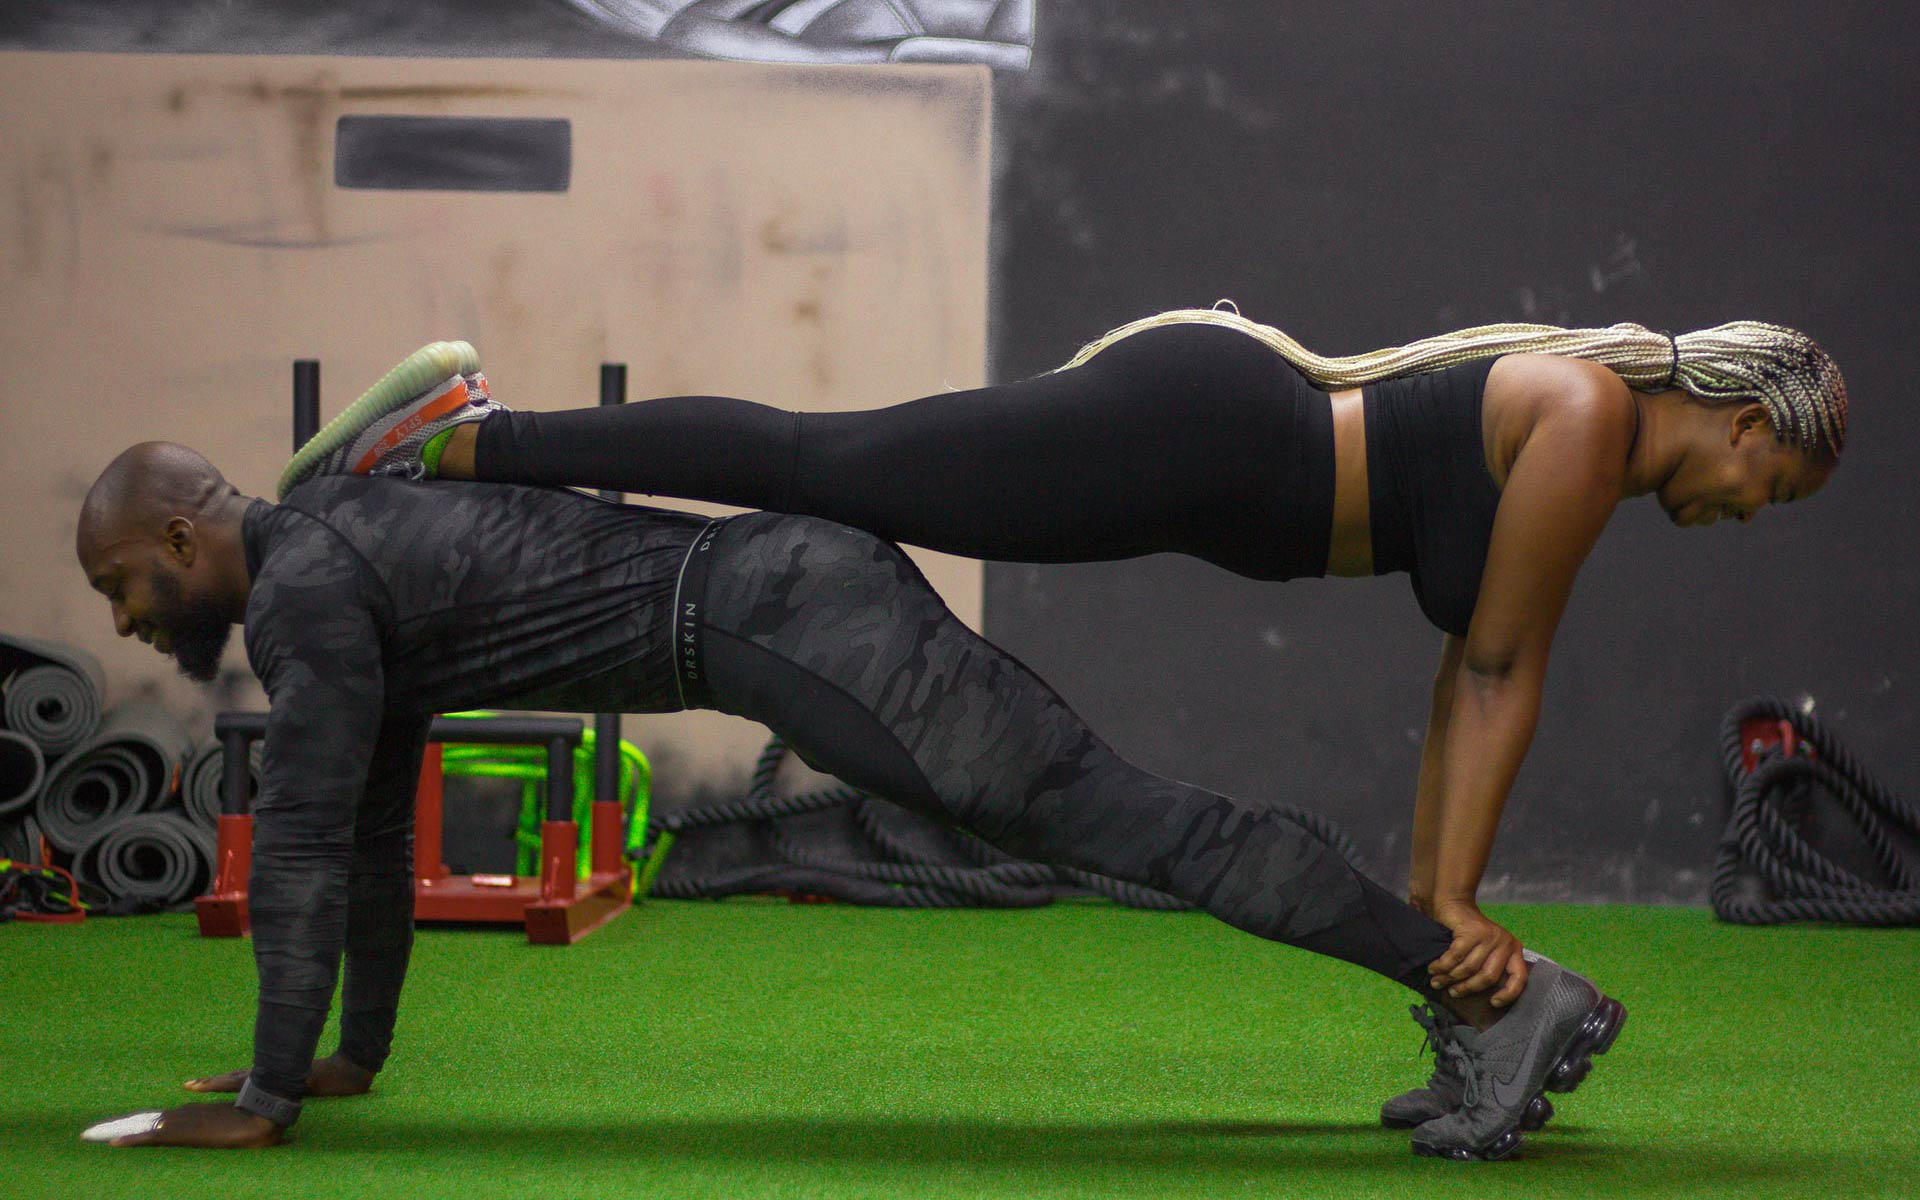 Two people adding balance training to their press up workout to work on proprioception